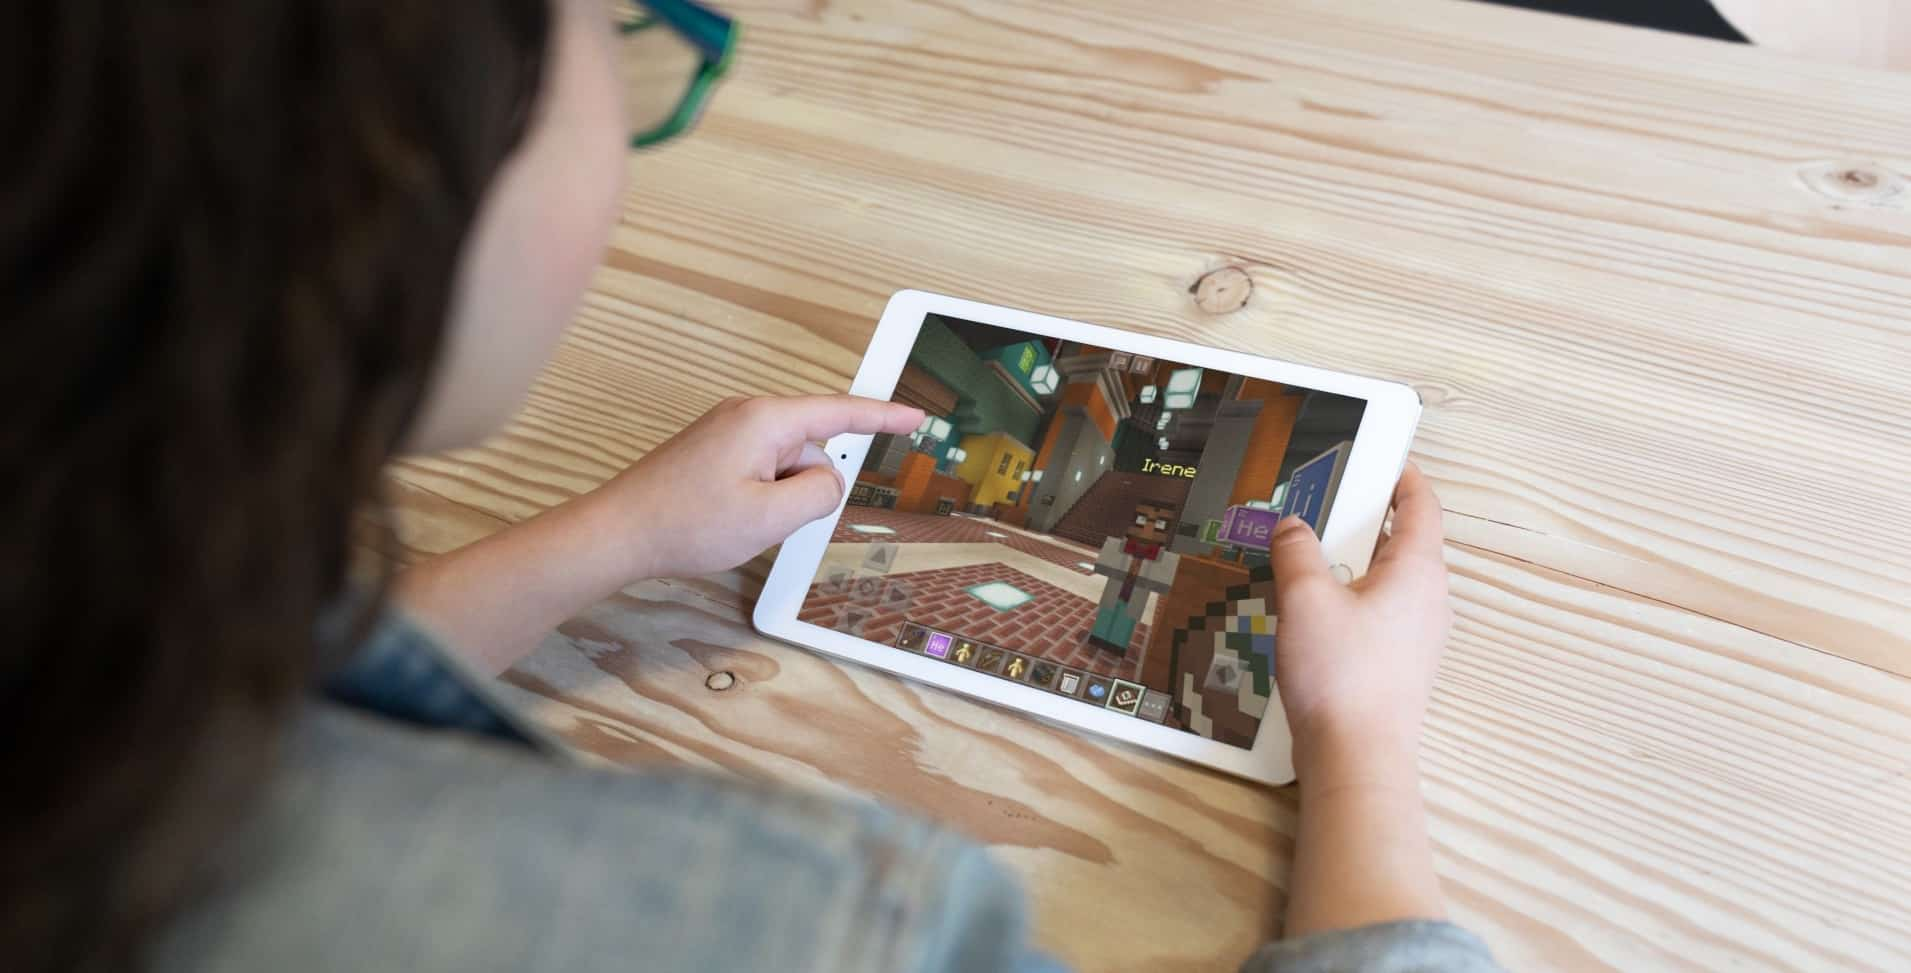 Minecraft: Education Edition can teach math, science, history, and more.